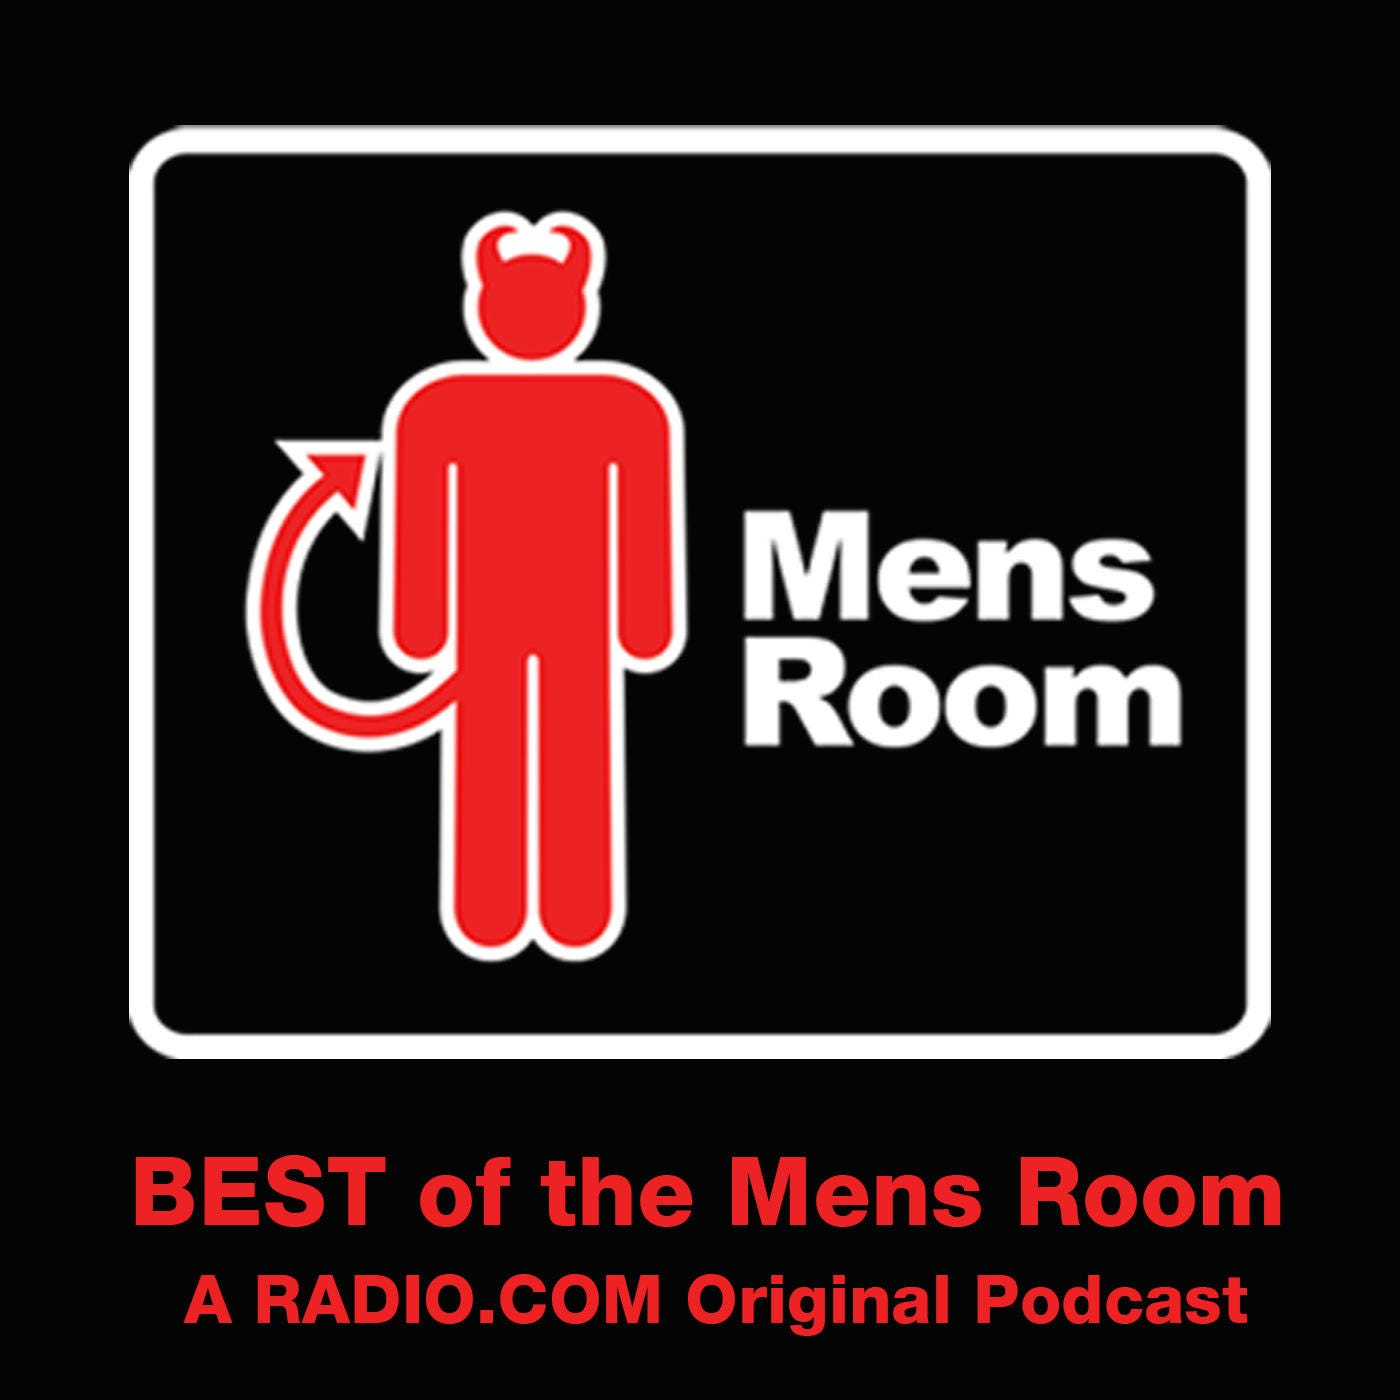 The Best of The Mens Room